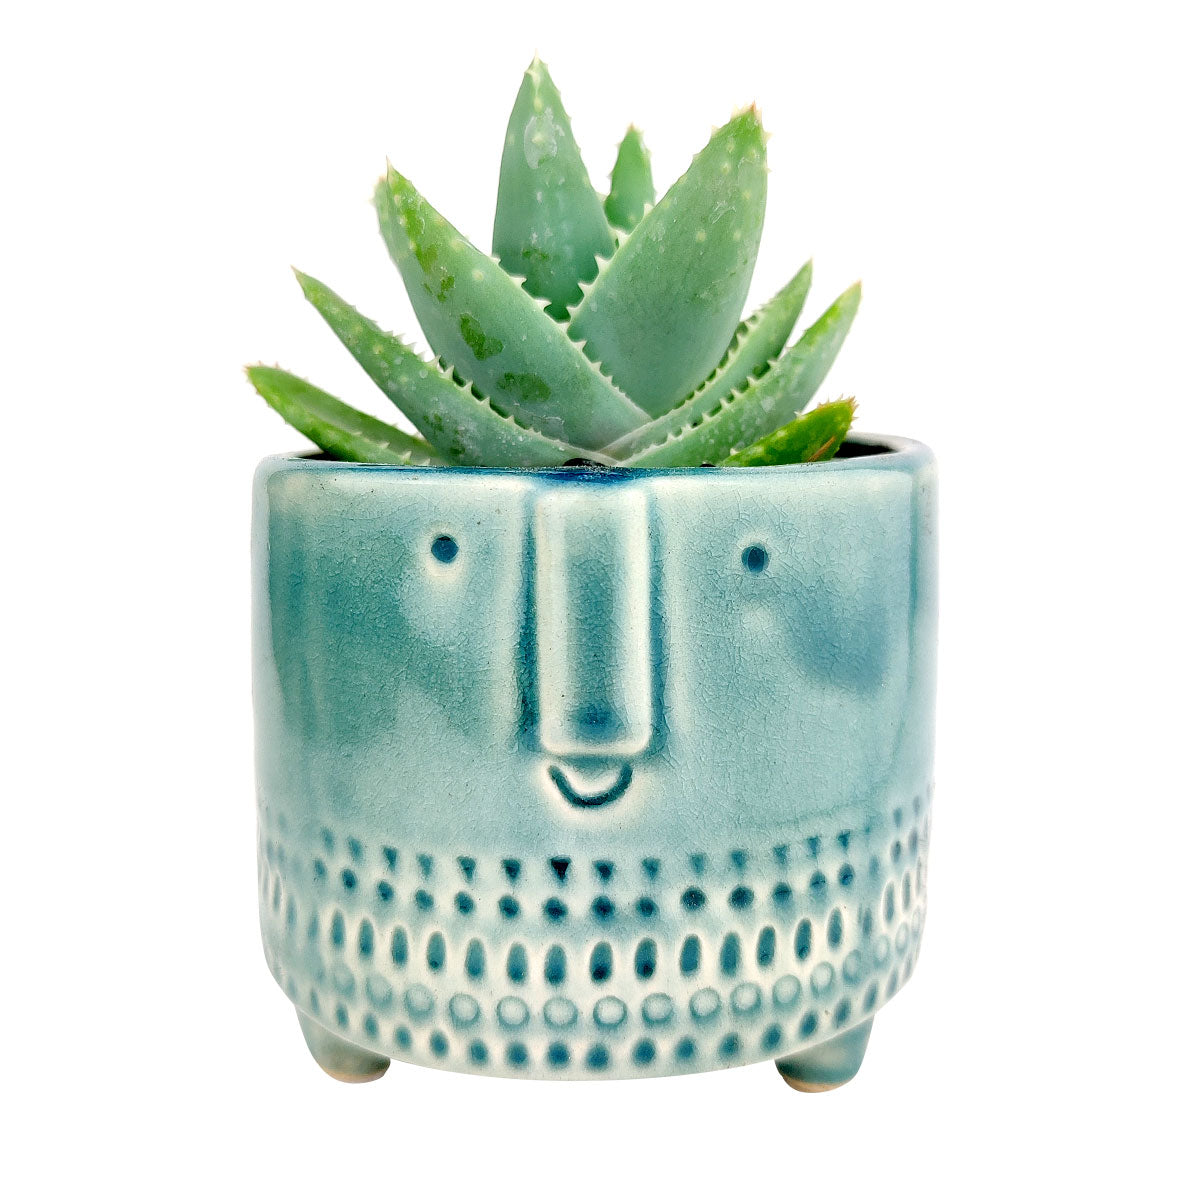 Crackled Glazed Gray Pot for sale, Minimalism Design Ceramic Pots for succulent plant, Medium ceramic succulent pot, Home decor Office decor, Round ceramic pot, Face ceramic pot for sale